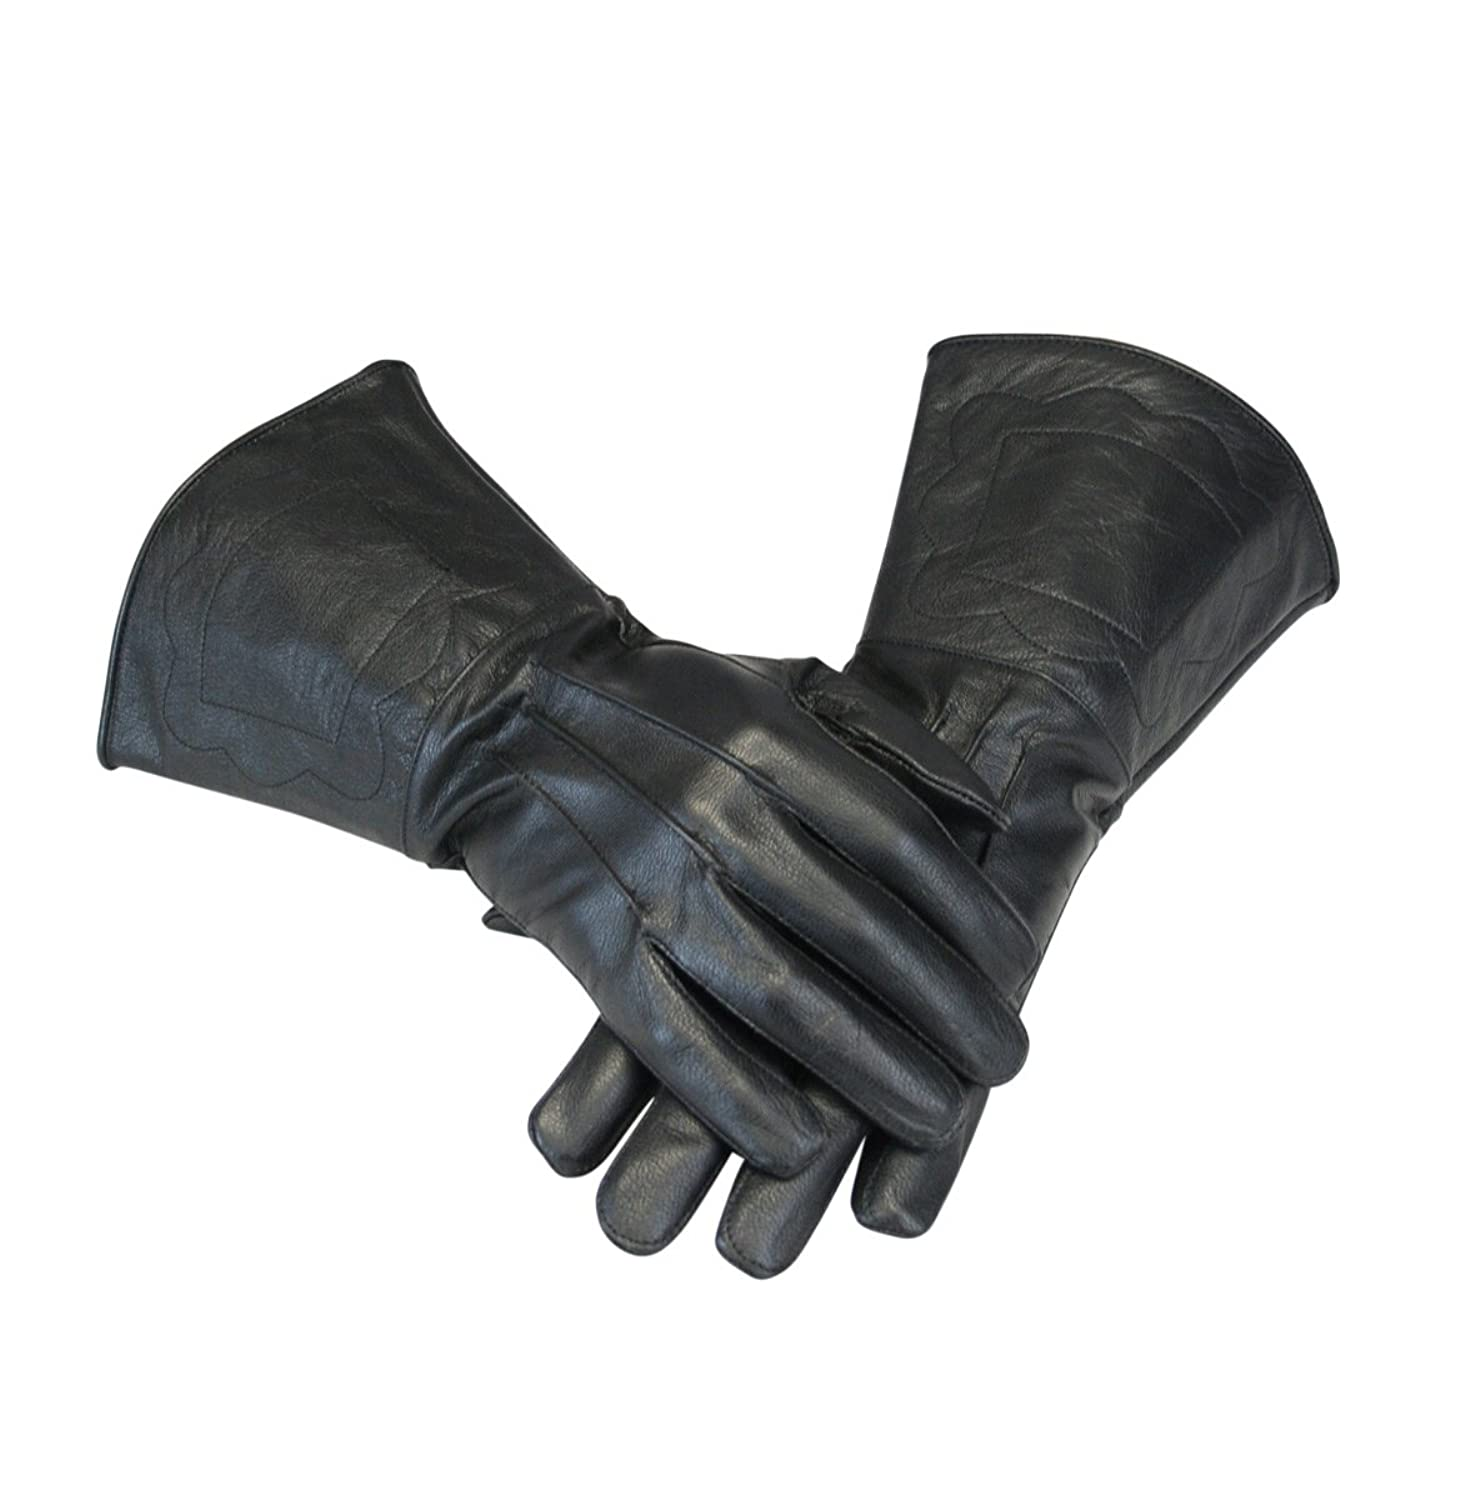 Renaissance Men Genuine Black Leather Gauntlet Gloves